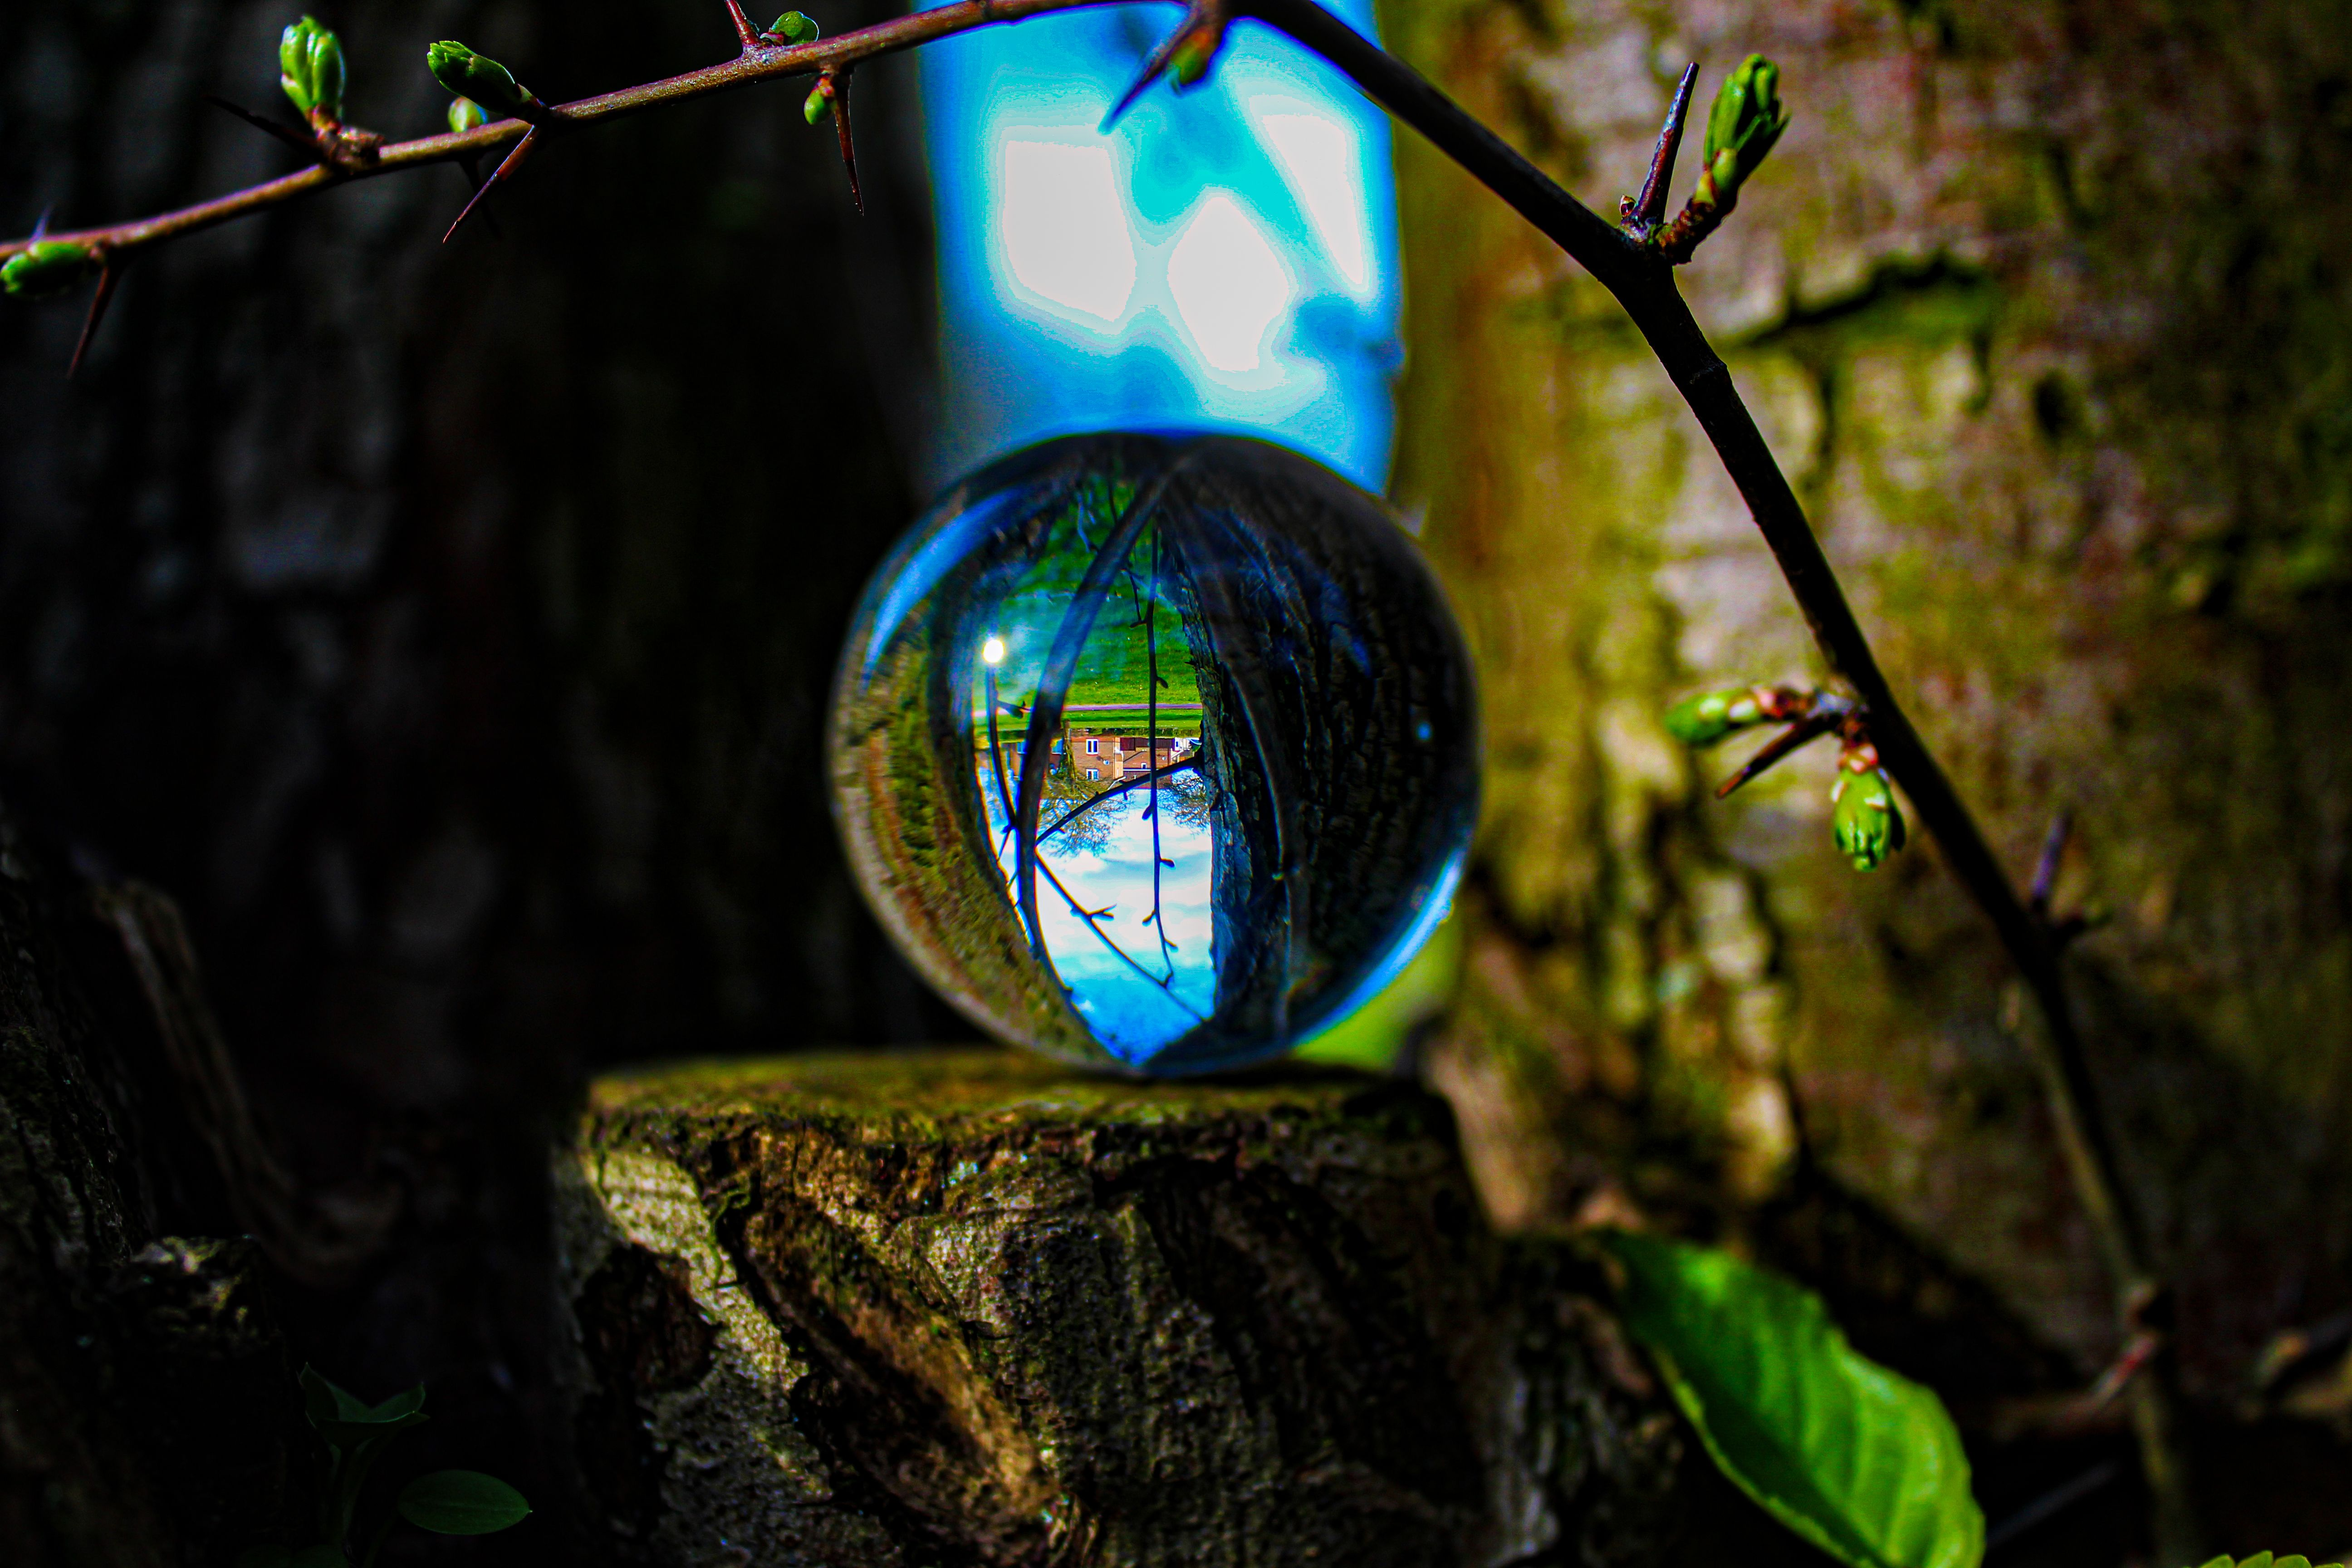 Had so much fun shooting through one of these. I recommend photographers buying this if you want to try new things  #photography #naturephotography #nature #crystalball #perspective #adventure #tree #park